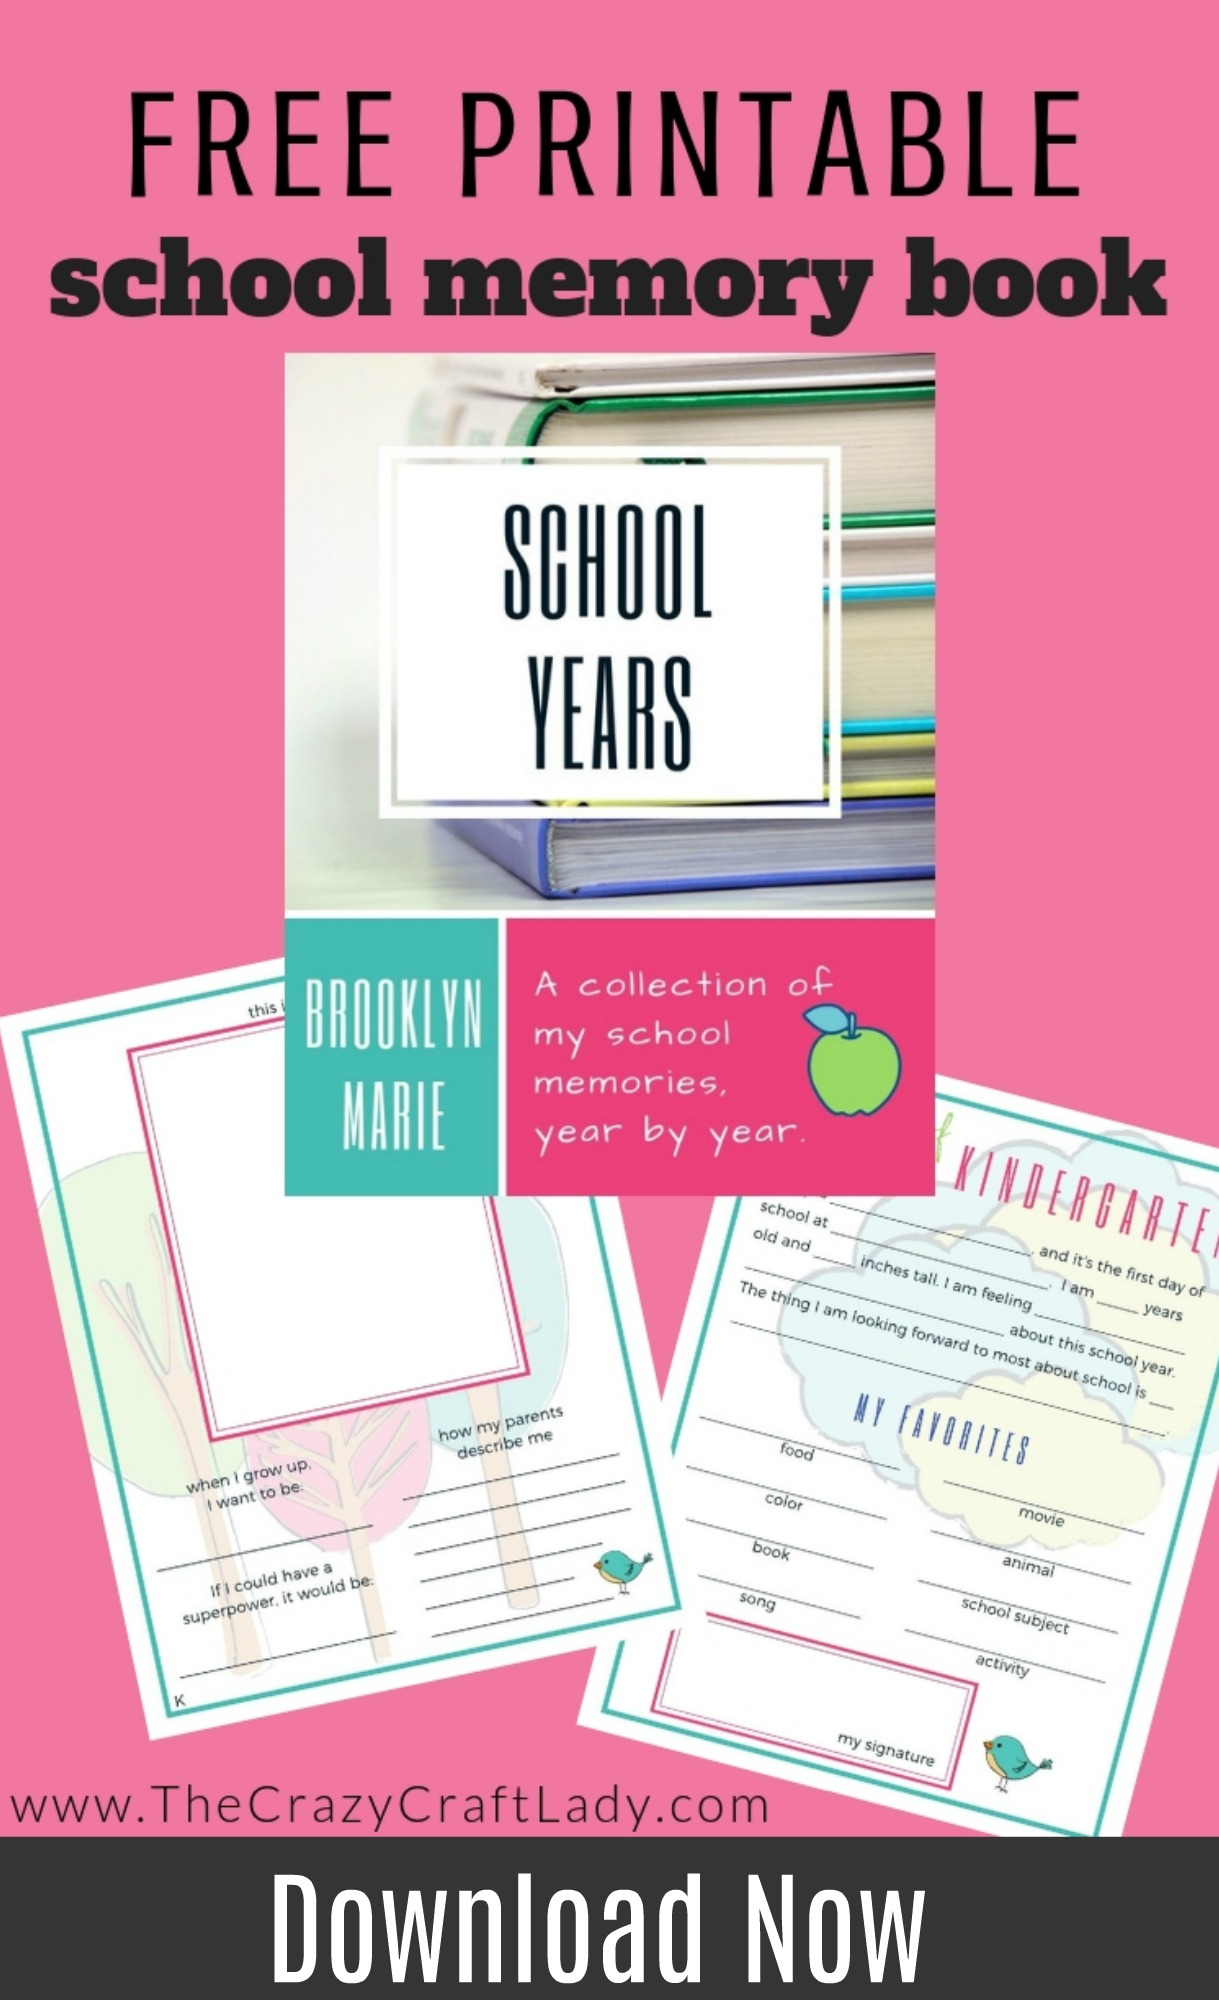 Free Printable School Memory Book - This journal and photo albums focuses on your child's interests and development, so it works no matter if you public school, home school, or private school. The entry sheets include fun prompts and room for notes and pictures. Each year asks the same questions so you can easily see progression year after year.